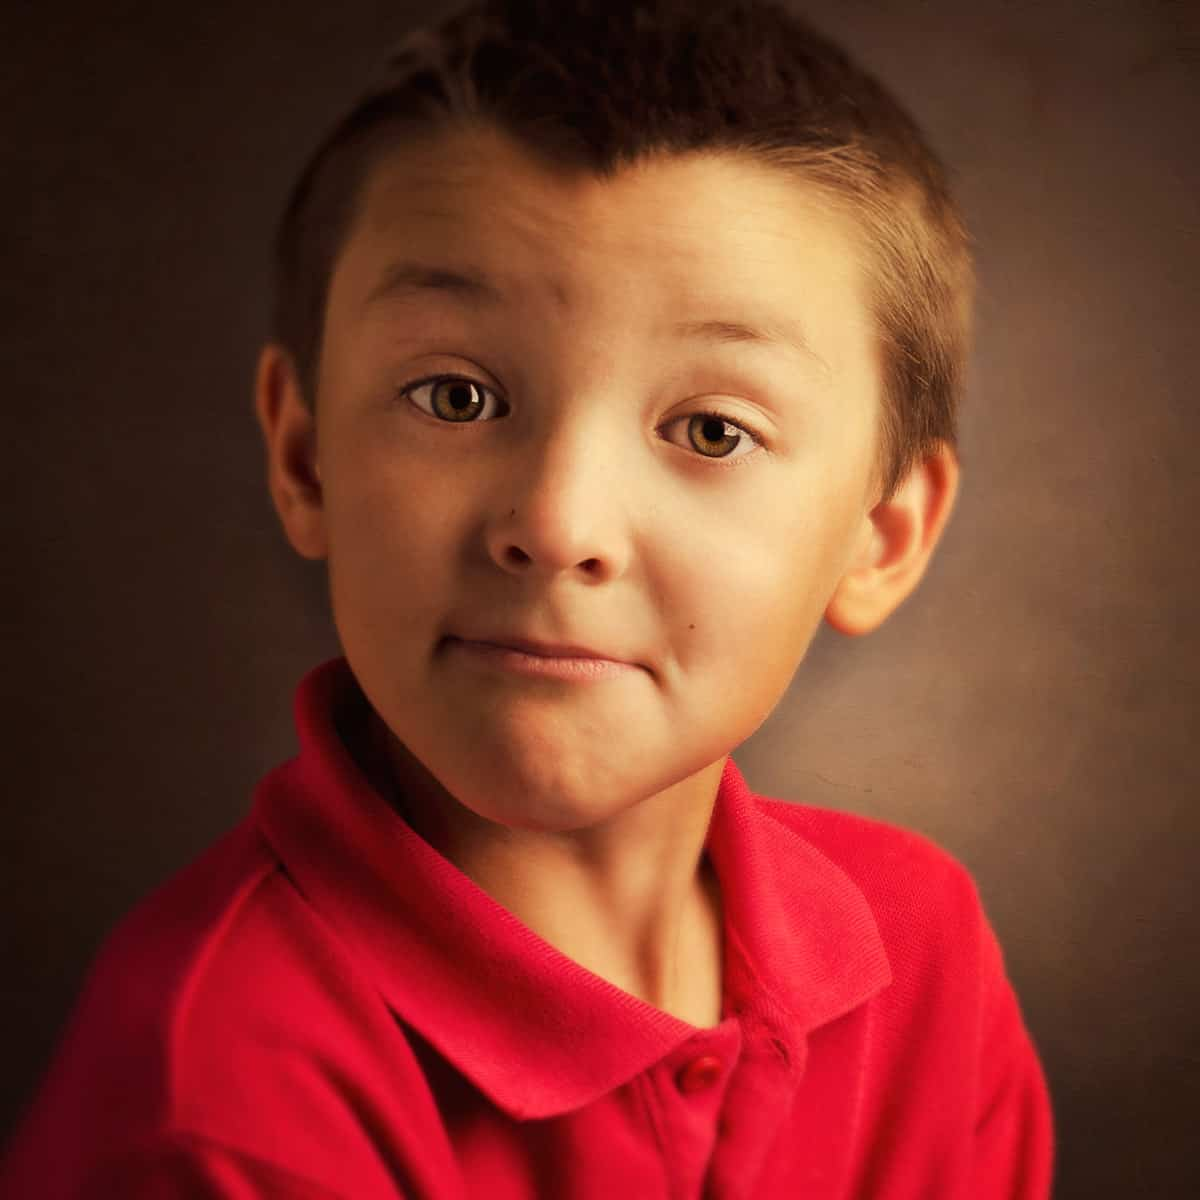 Puzzled Young Boy in Red Shirt